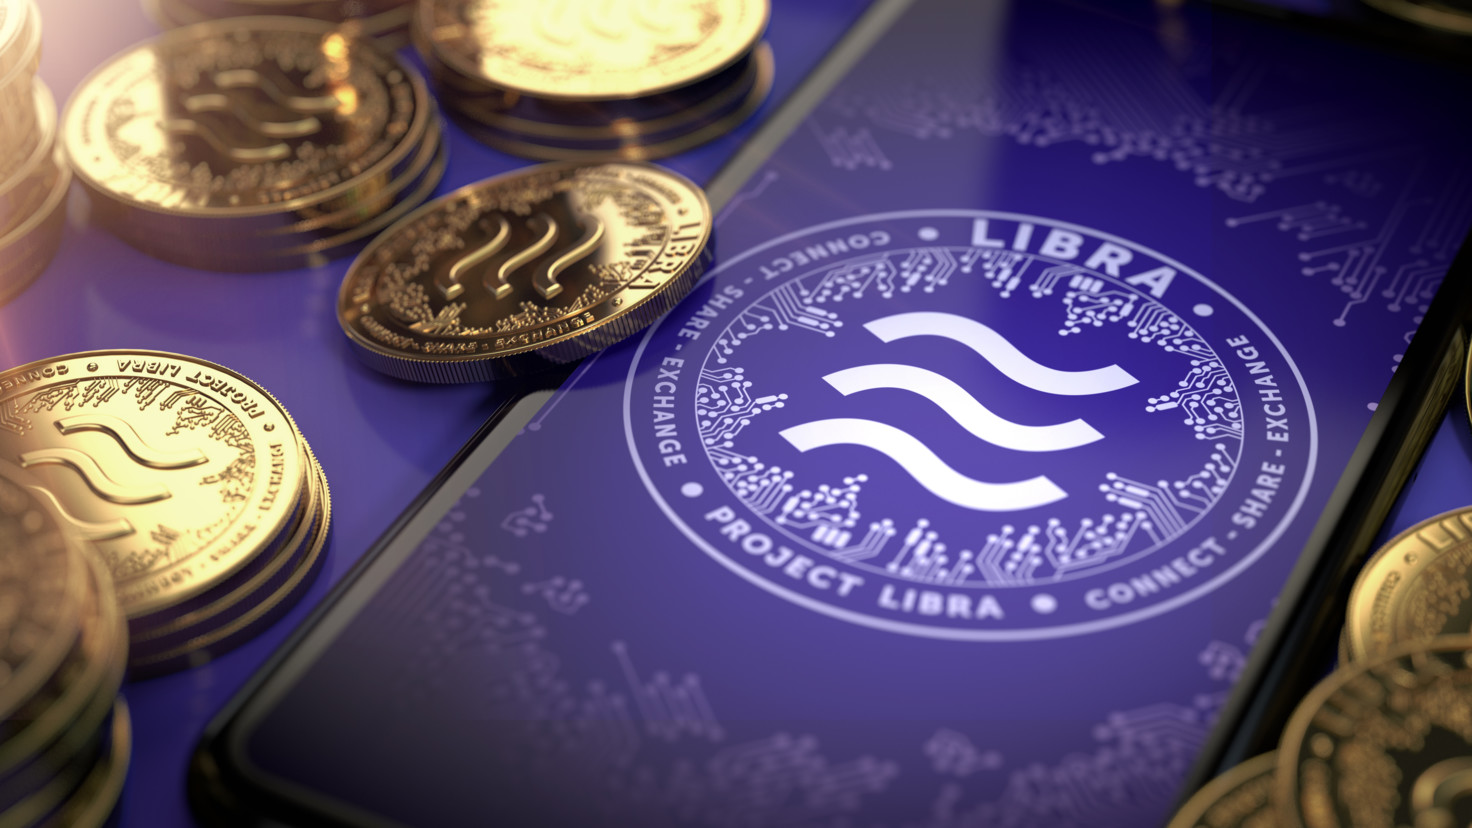 Libra provoked central bank interest in digital currency former BOJ executive says